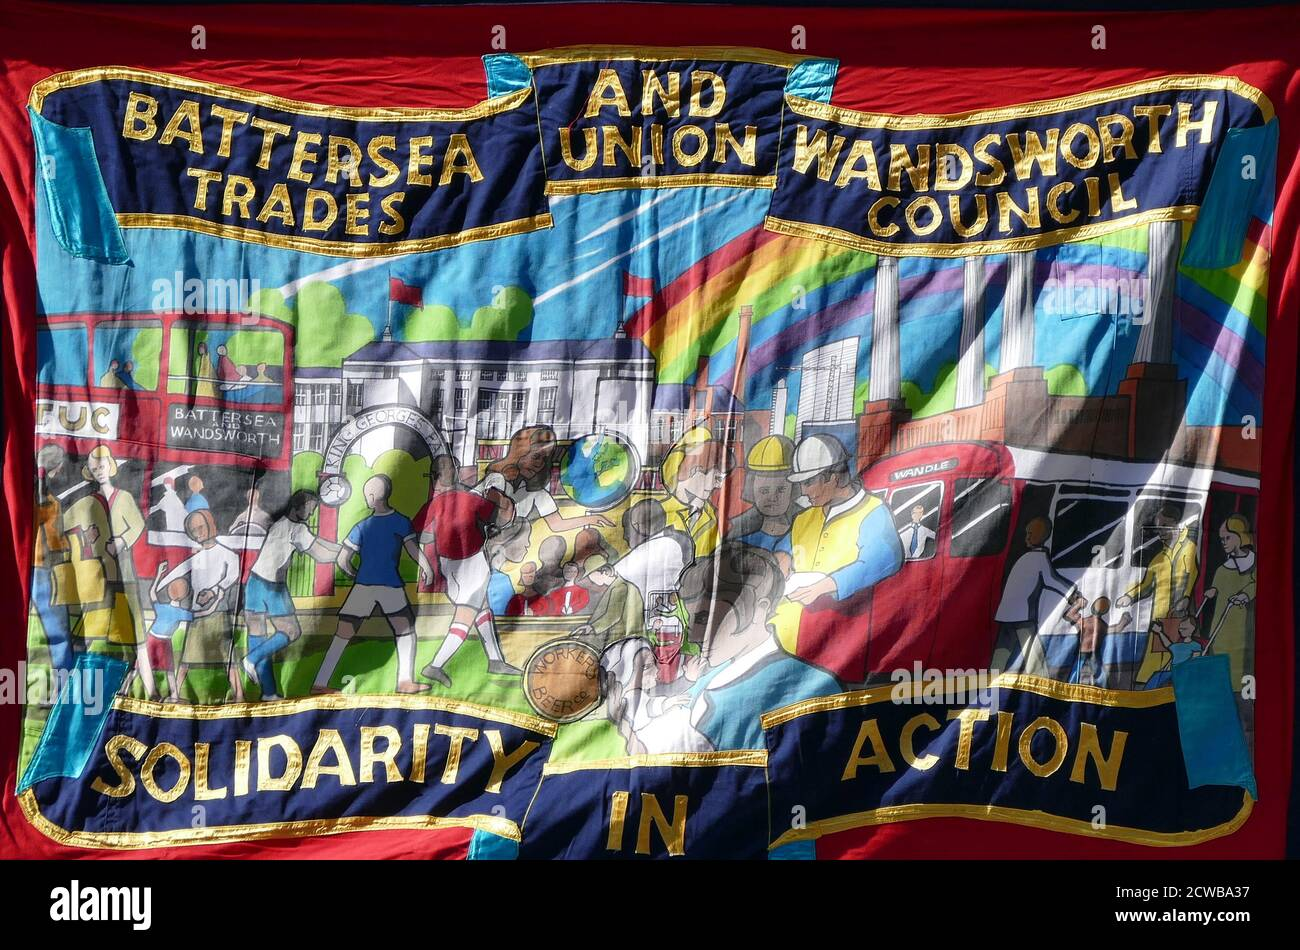 Battersea & Wandsworth Trade Union Council Banner. Battersea and Wandsworth Trades Union Council (BWTUC) represents workers across the economy from education, health, retail and wholesale distribution, communications, transport, construction and other parts of the service sector. The organisation was first established in Battersea in 1894 by the prominent then leader of the labour movement John Burns. John Burns was the second ever Labour MP, alongside Kier Hardy, to be elected to Parliament Stock Photo